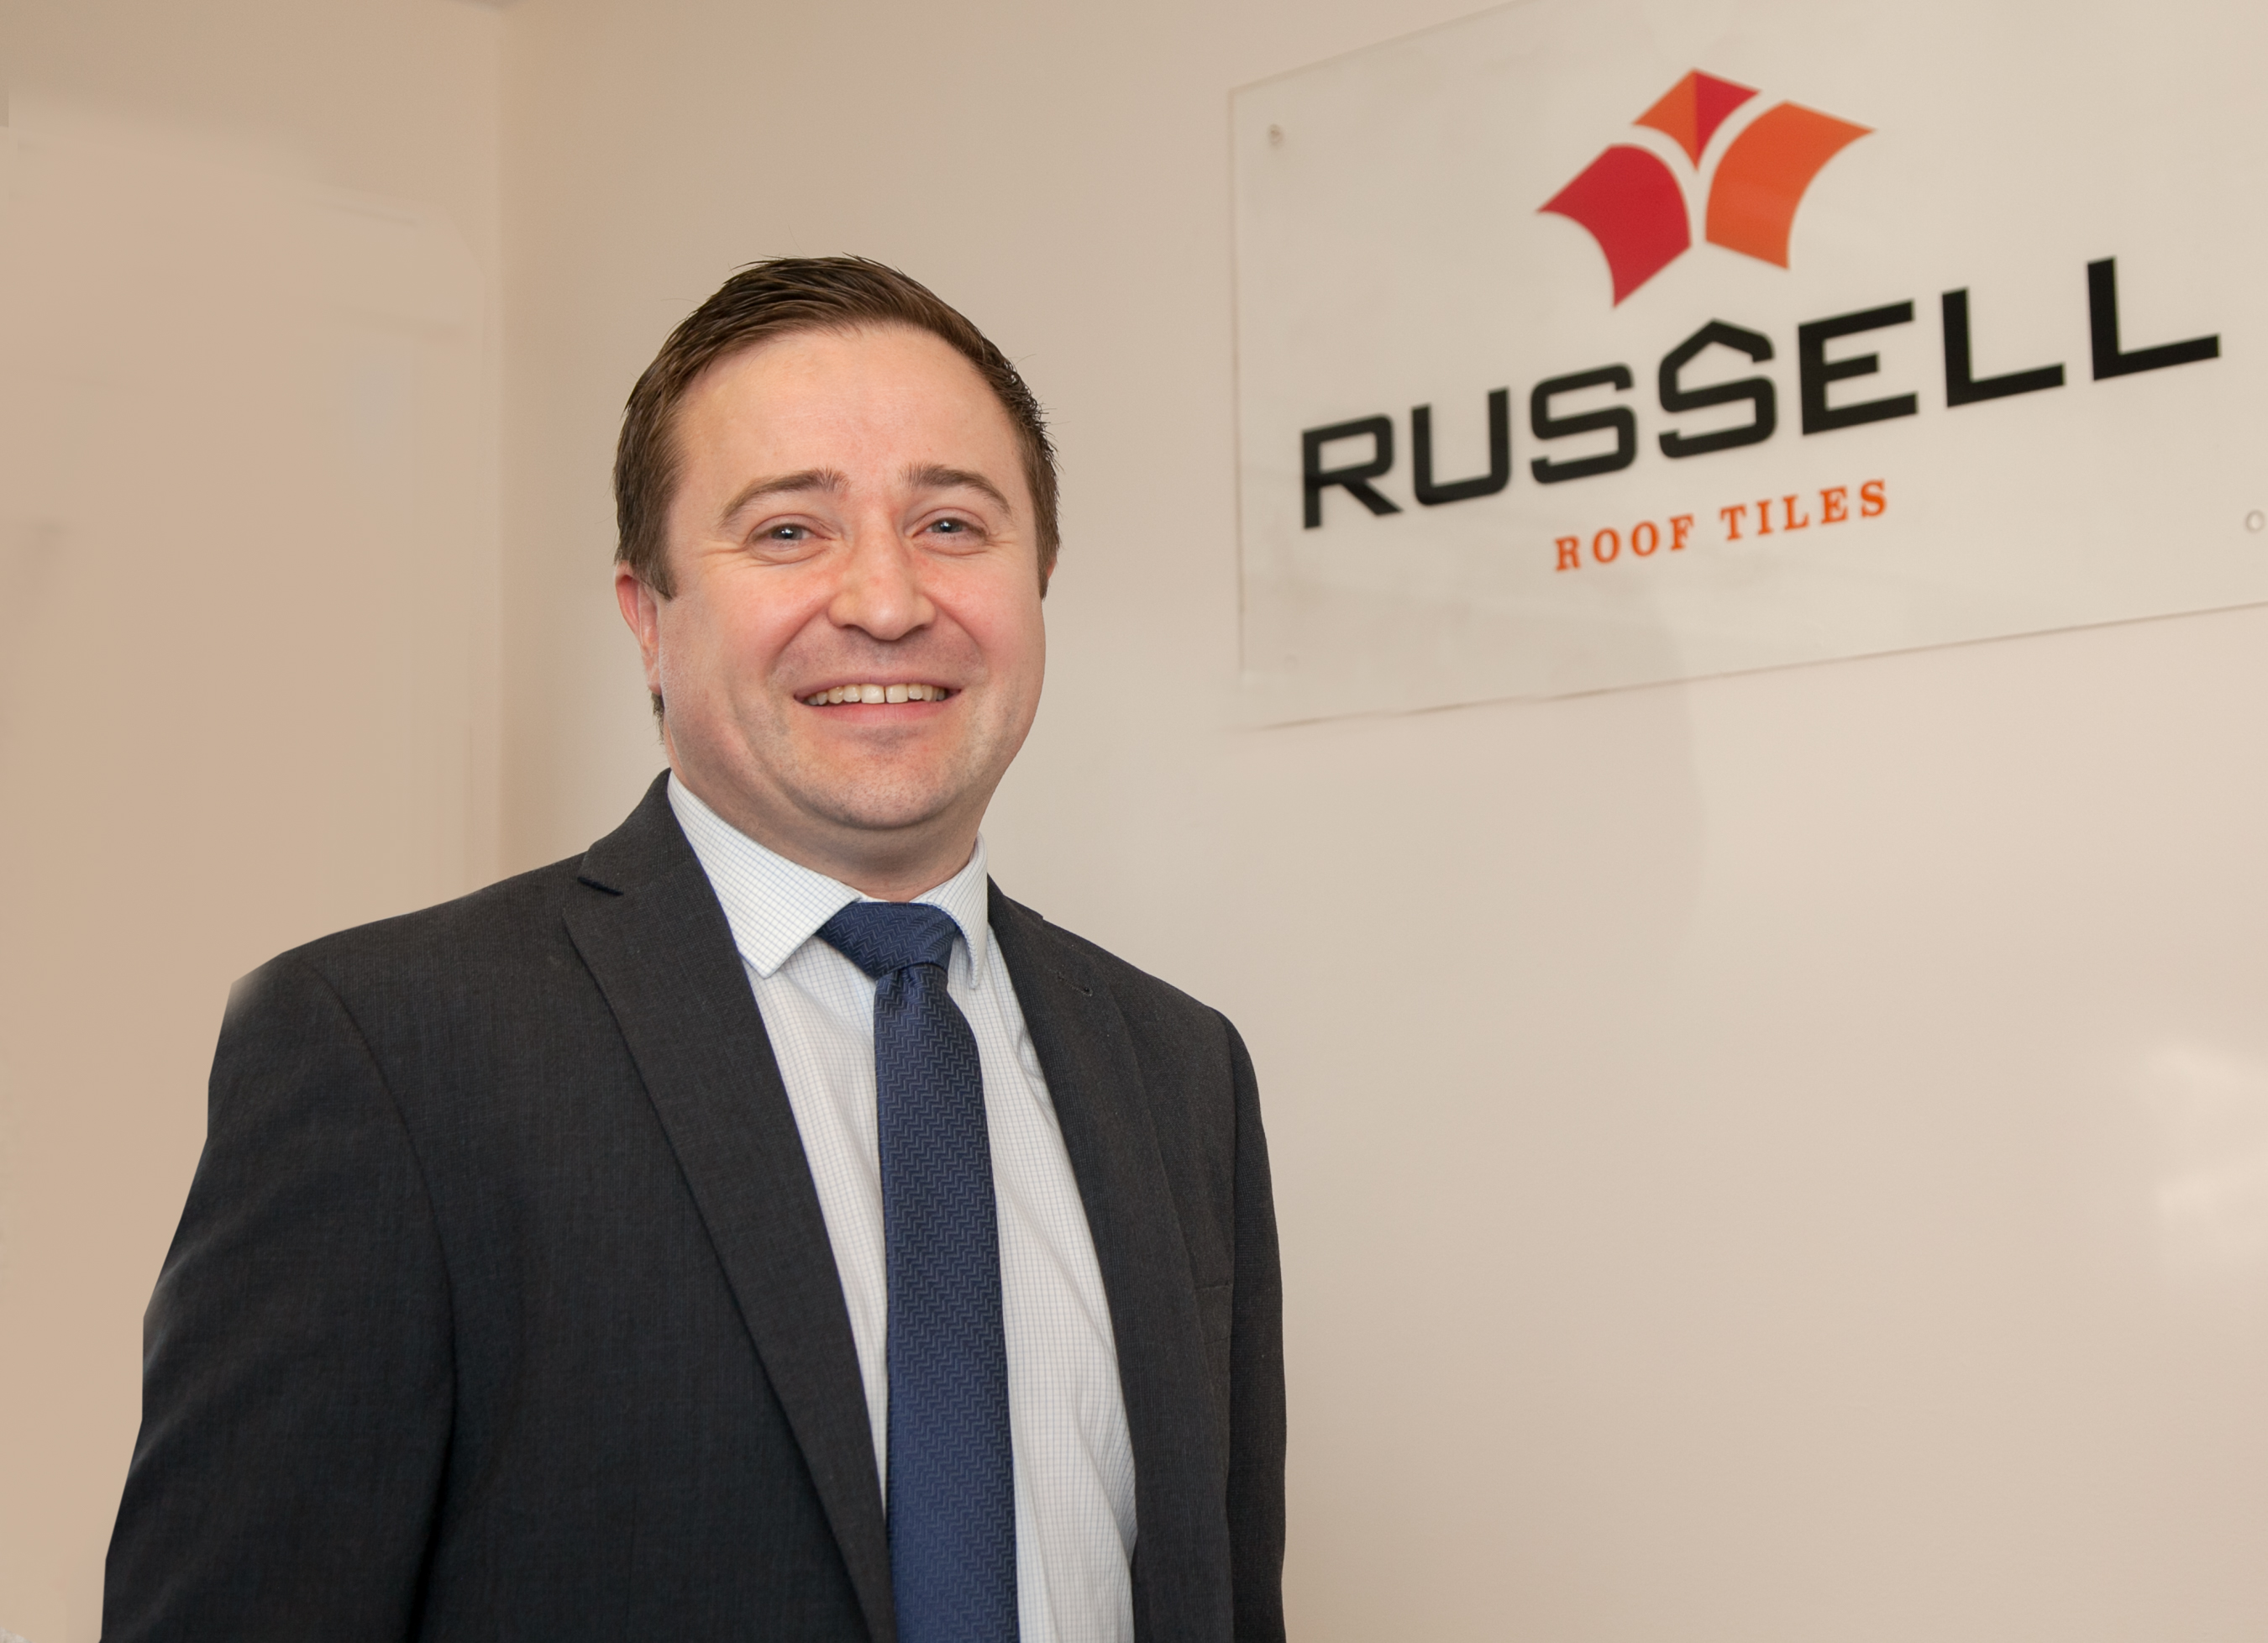 Russells' training welcomed by industryArchitect Projects